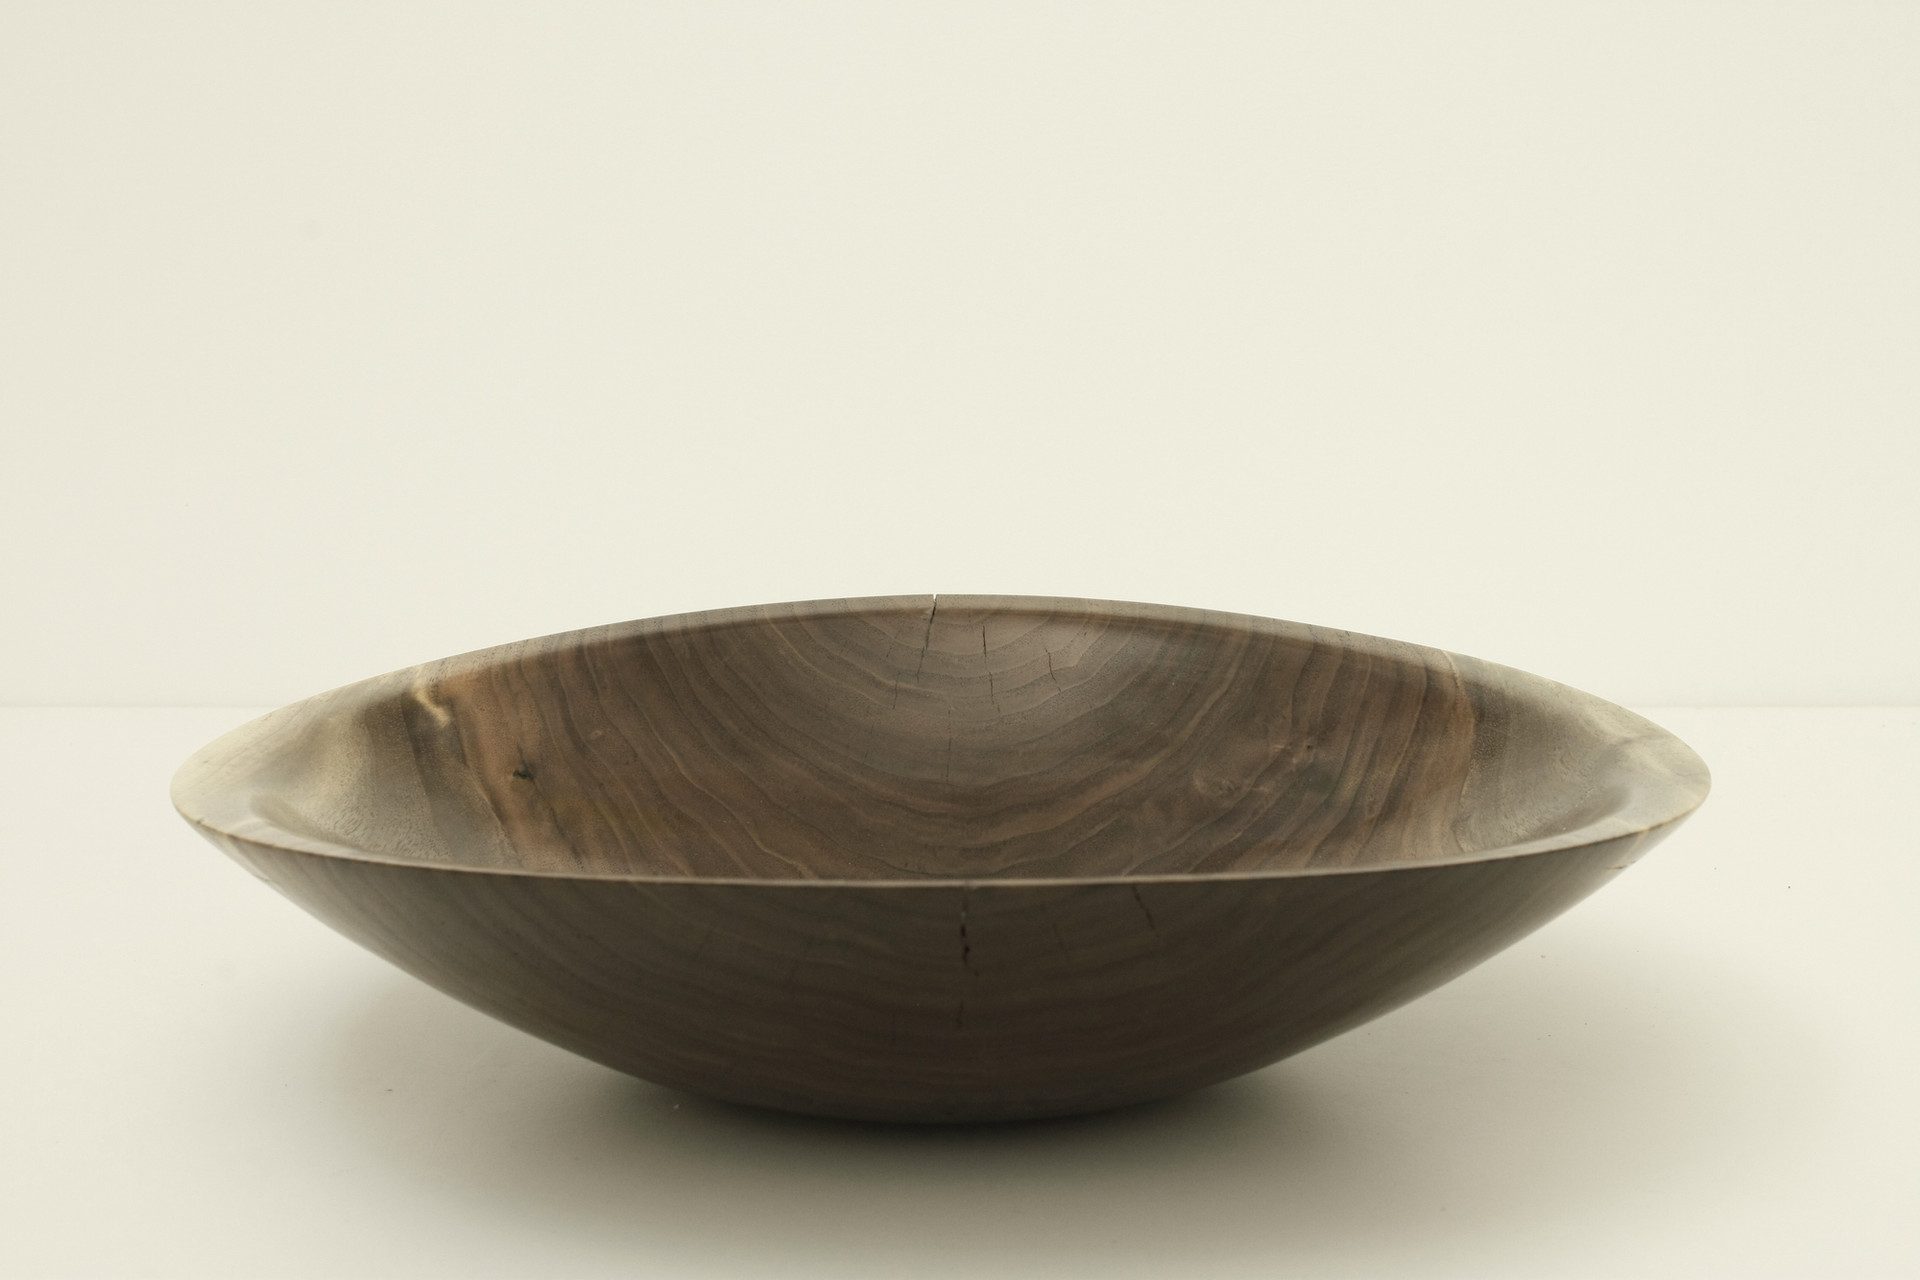 Walnut bowl